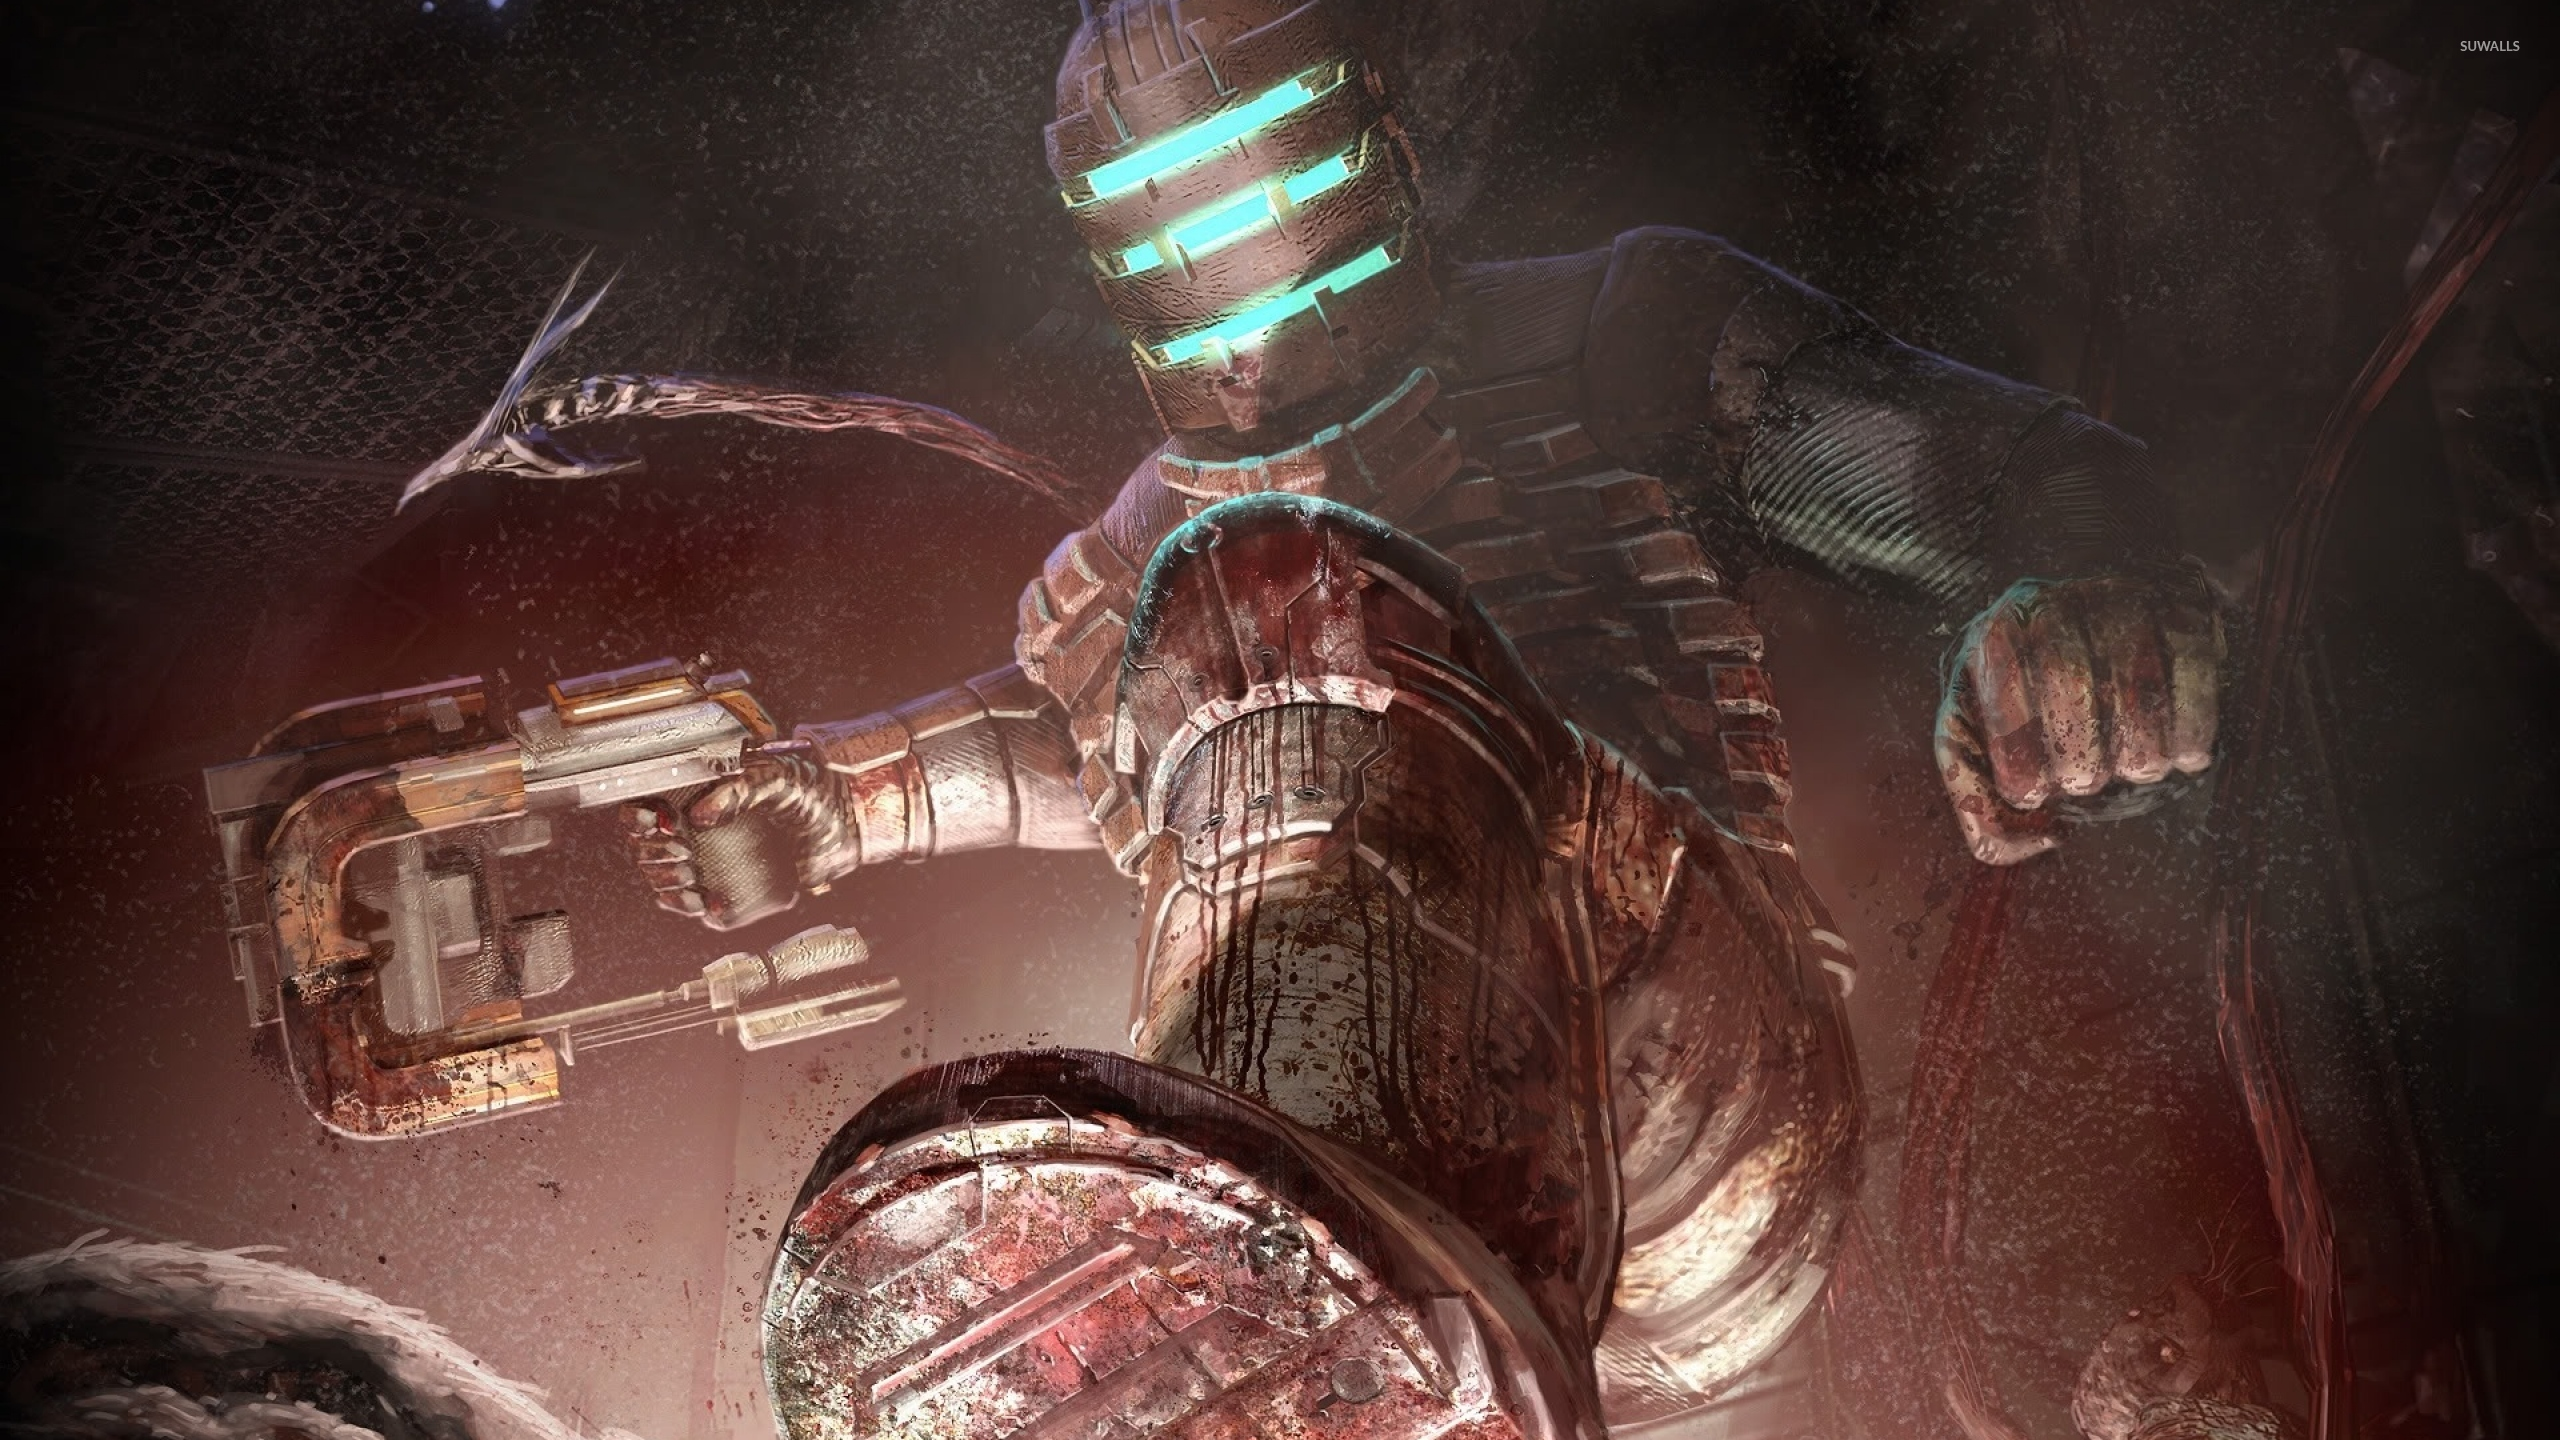 Dead Space Wallpaper Game Wallpapers 8054